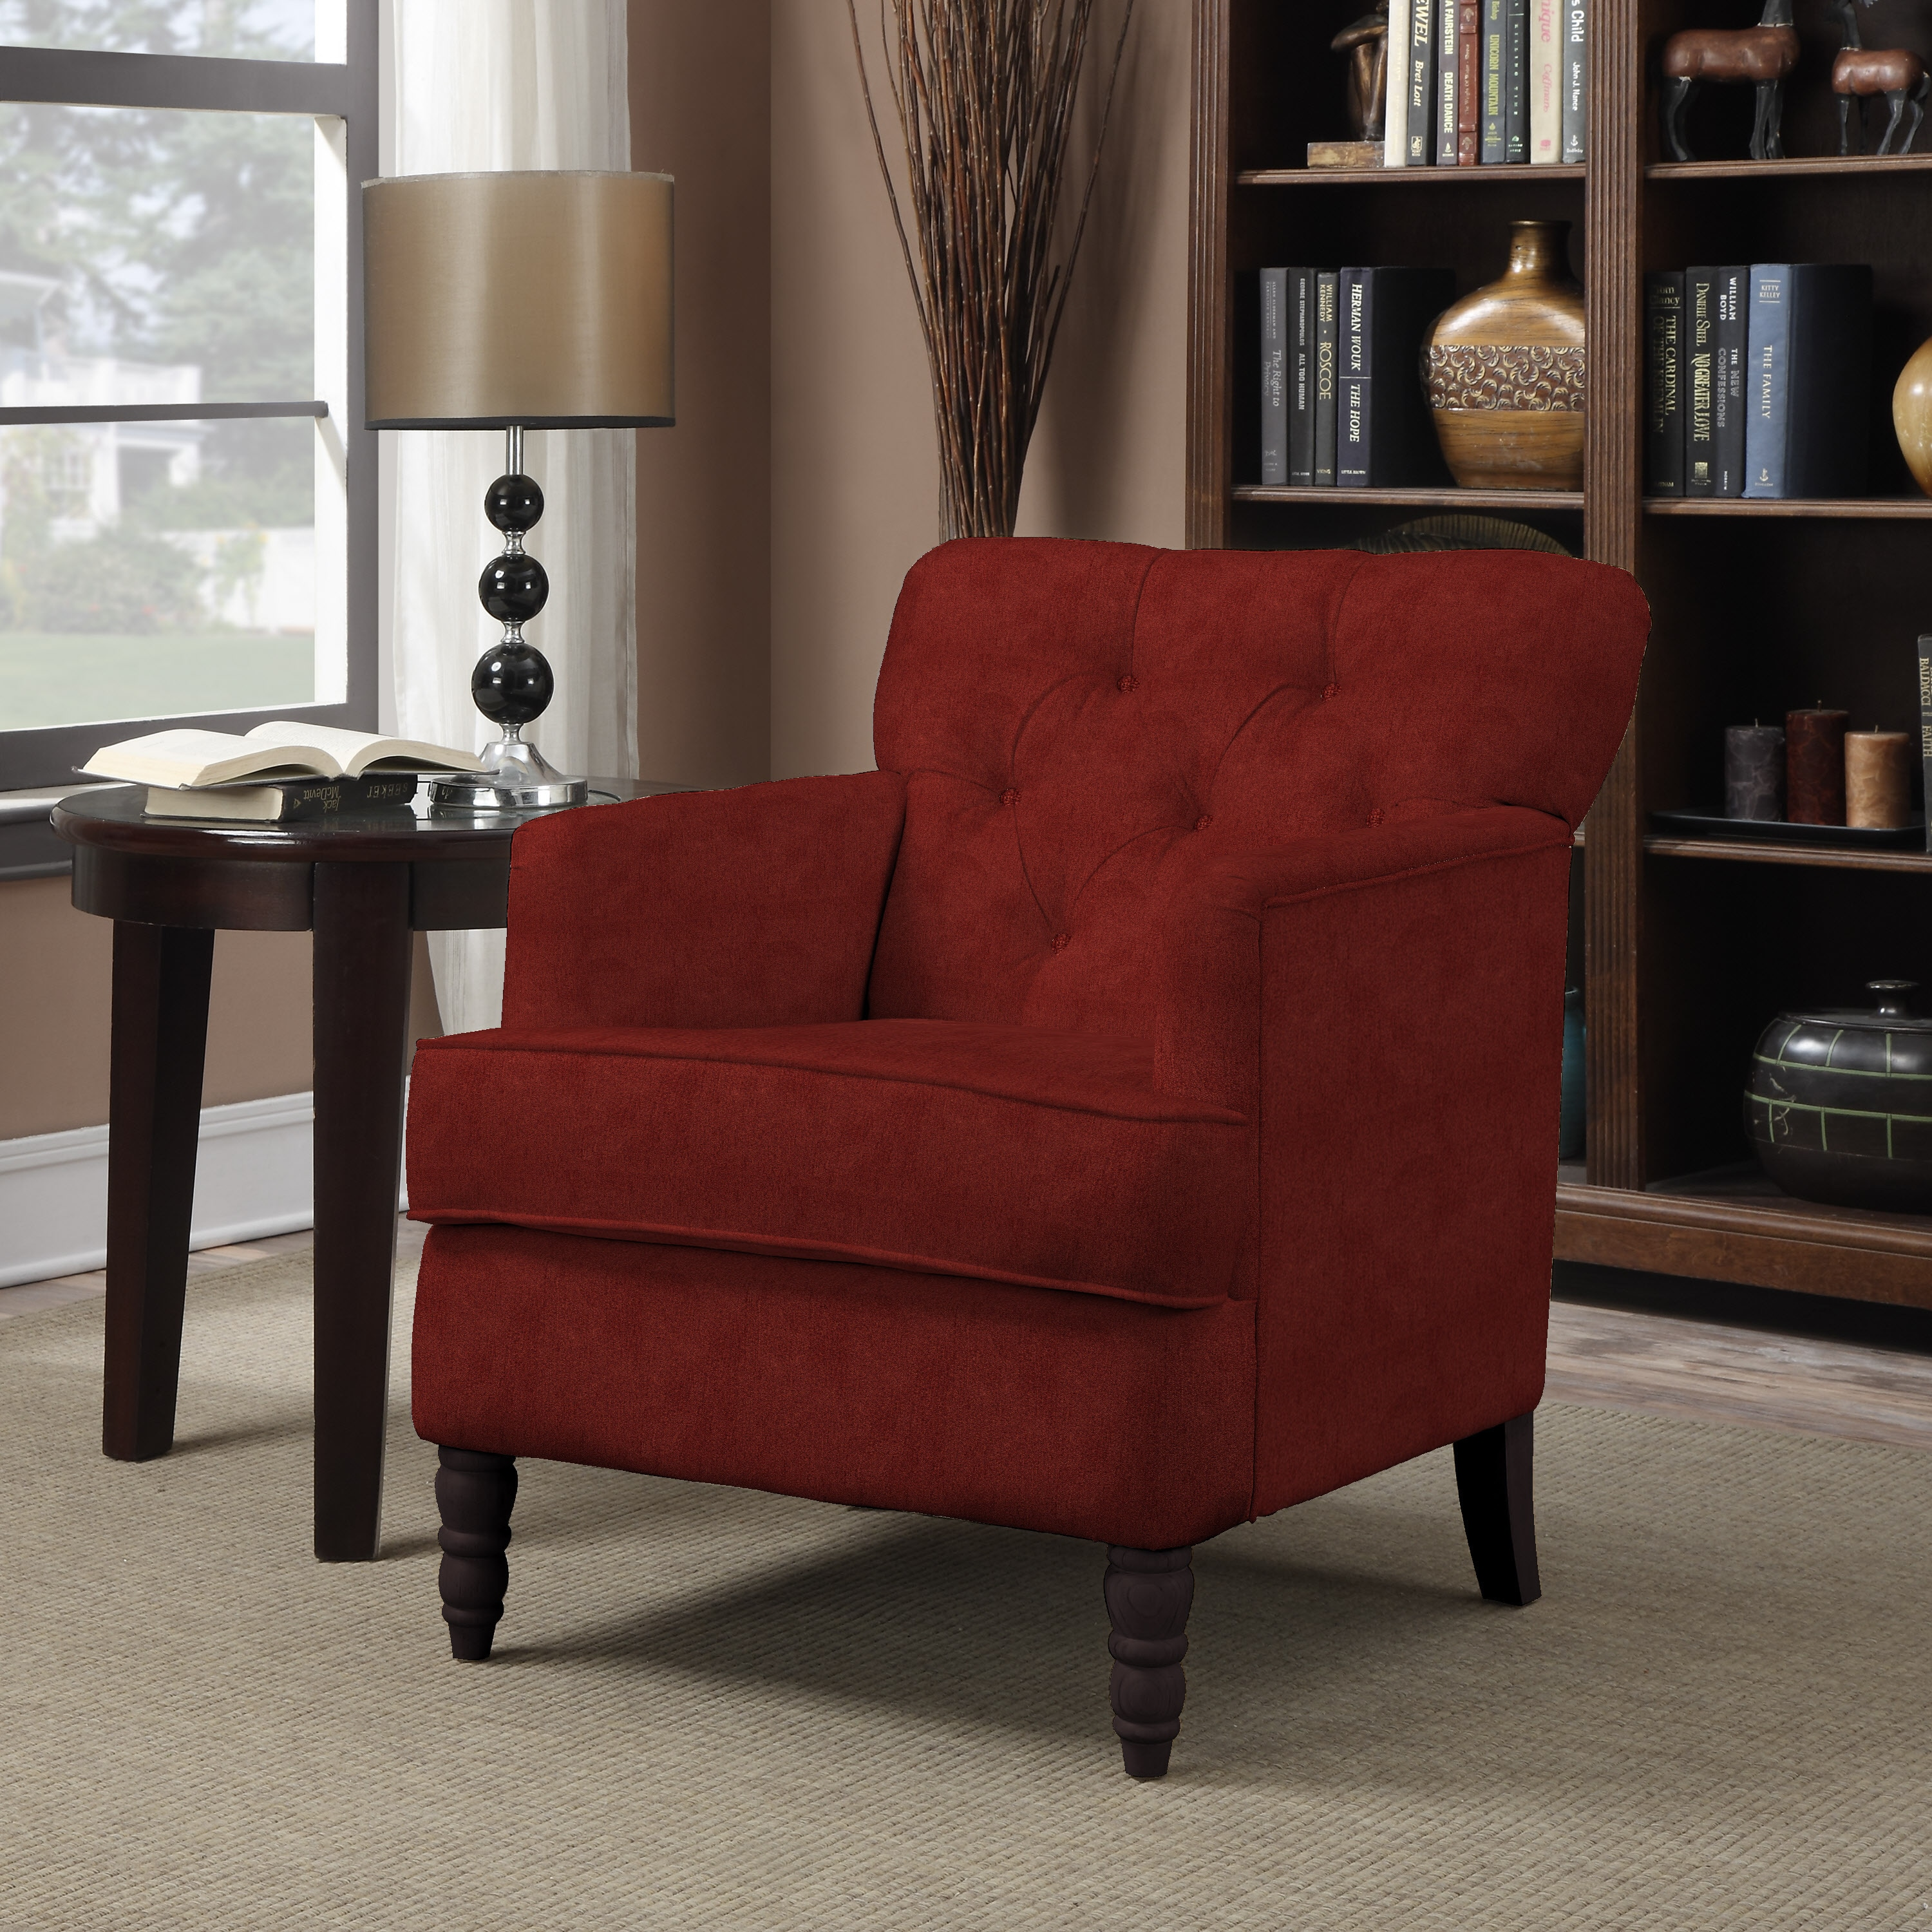 Red Living Room Chair Red Living Room Chairs Architectural Design